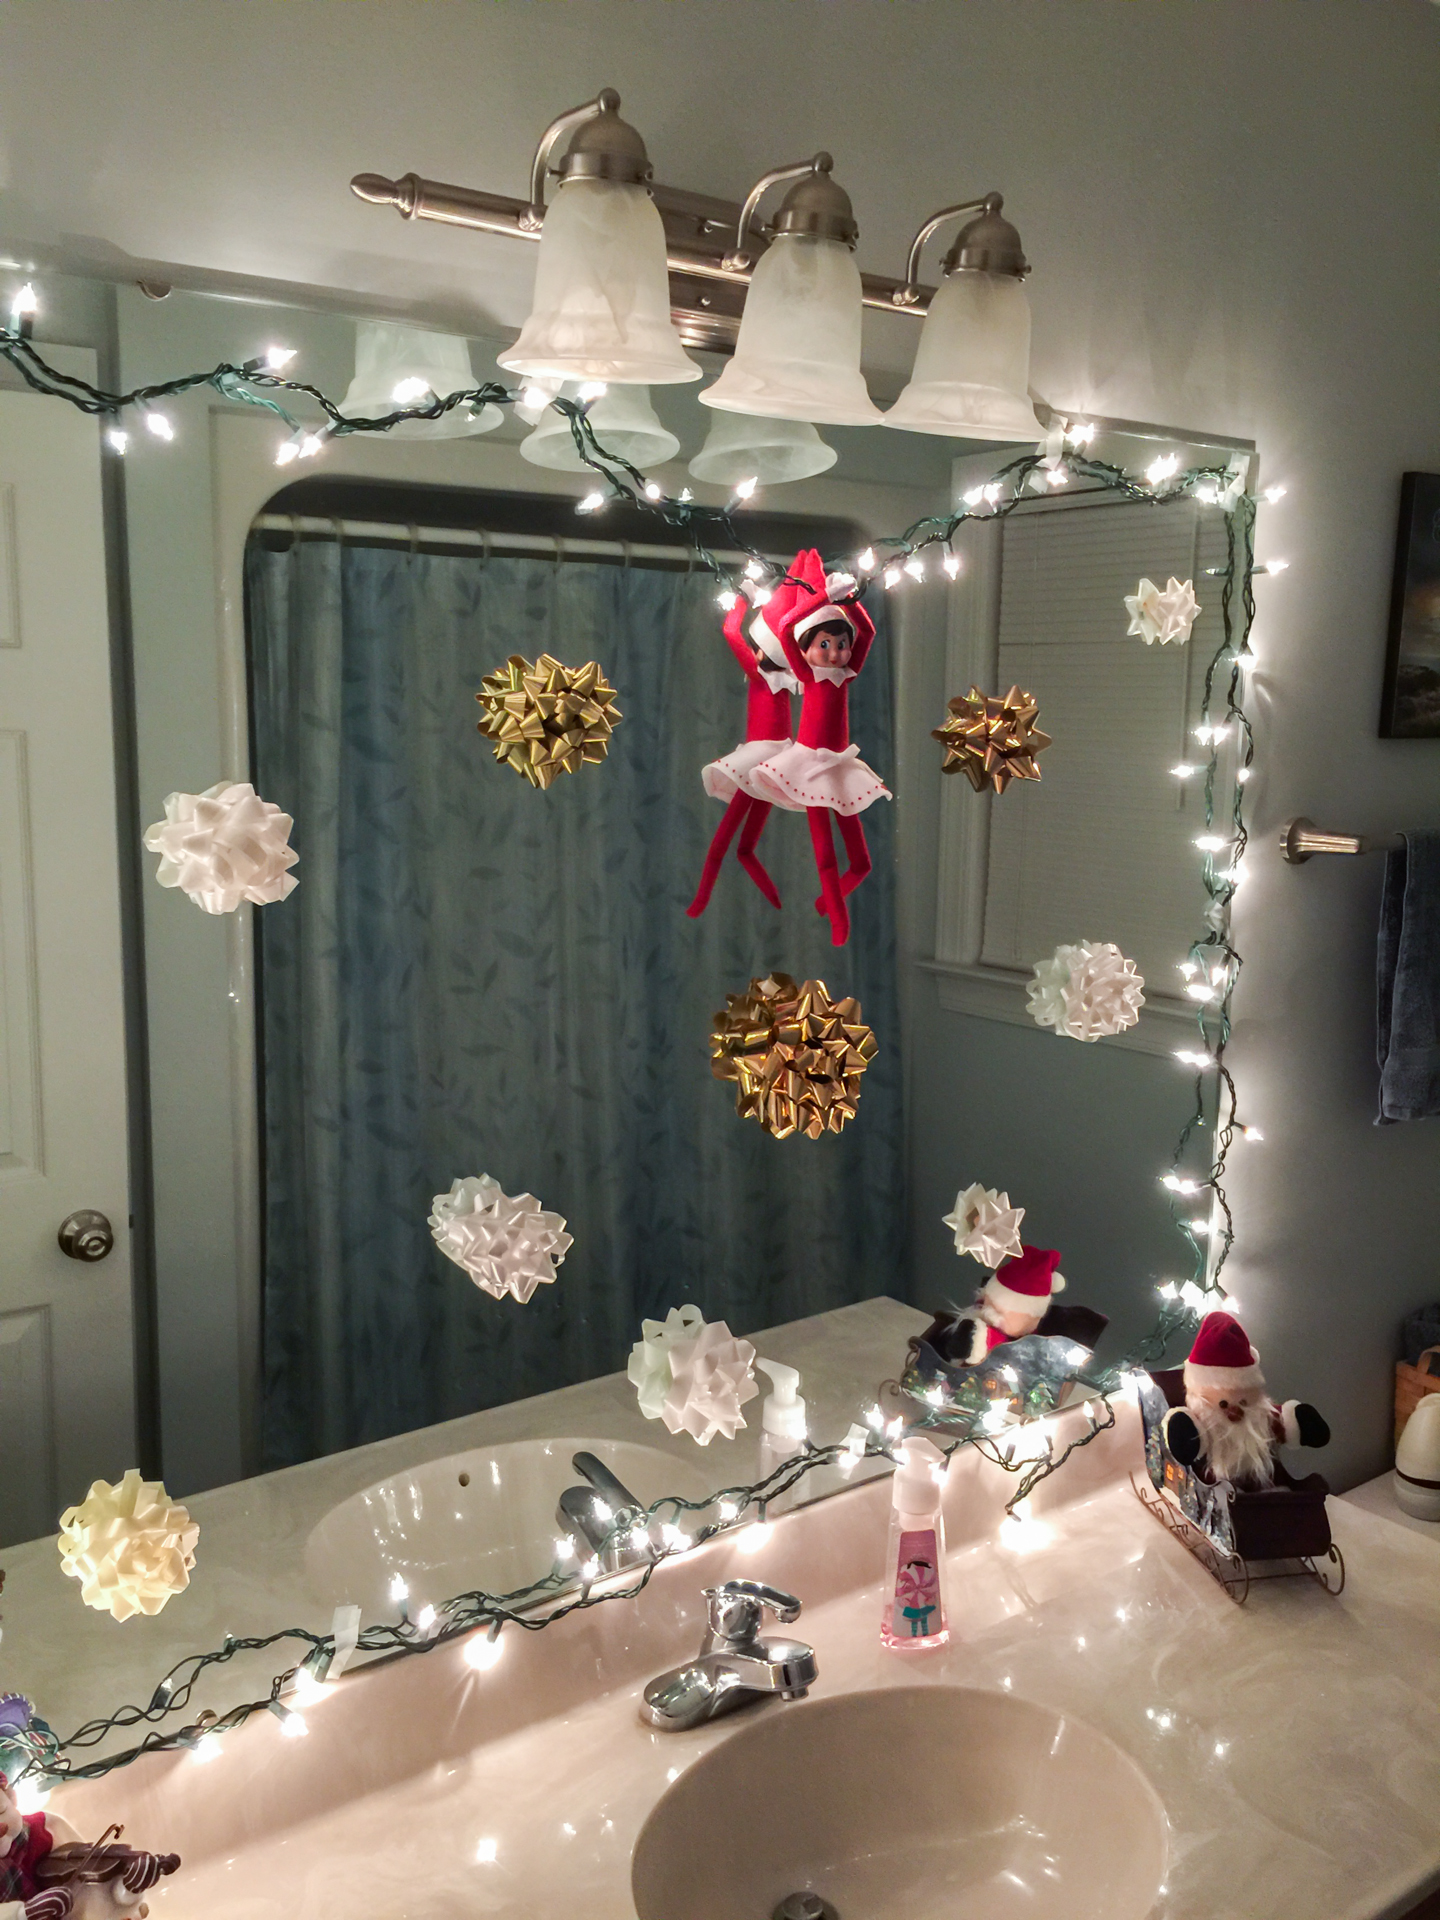 Elf on the shelf 2014 day 3 philip leslie kayli for Elf on the shelf bathroom ideas